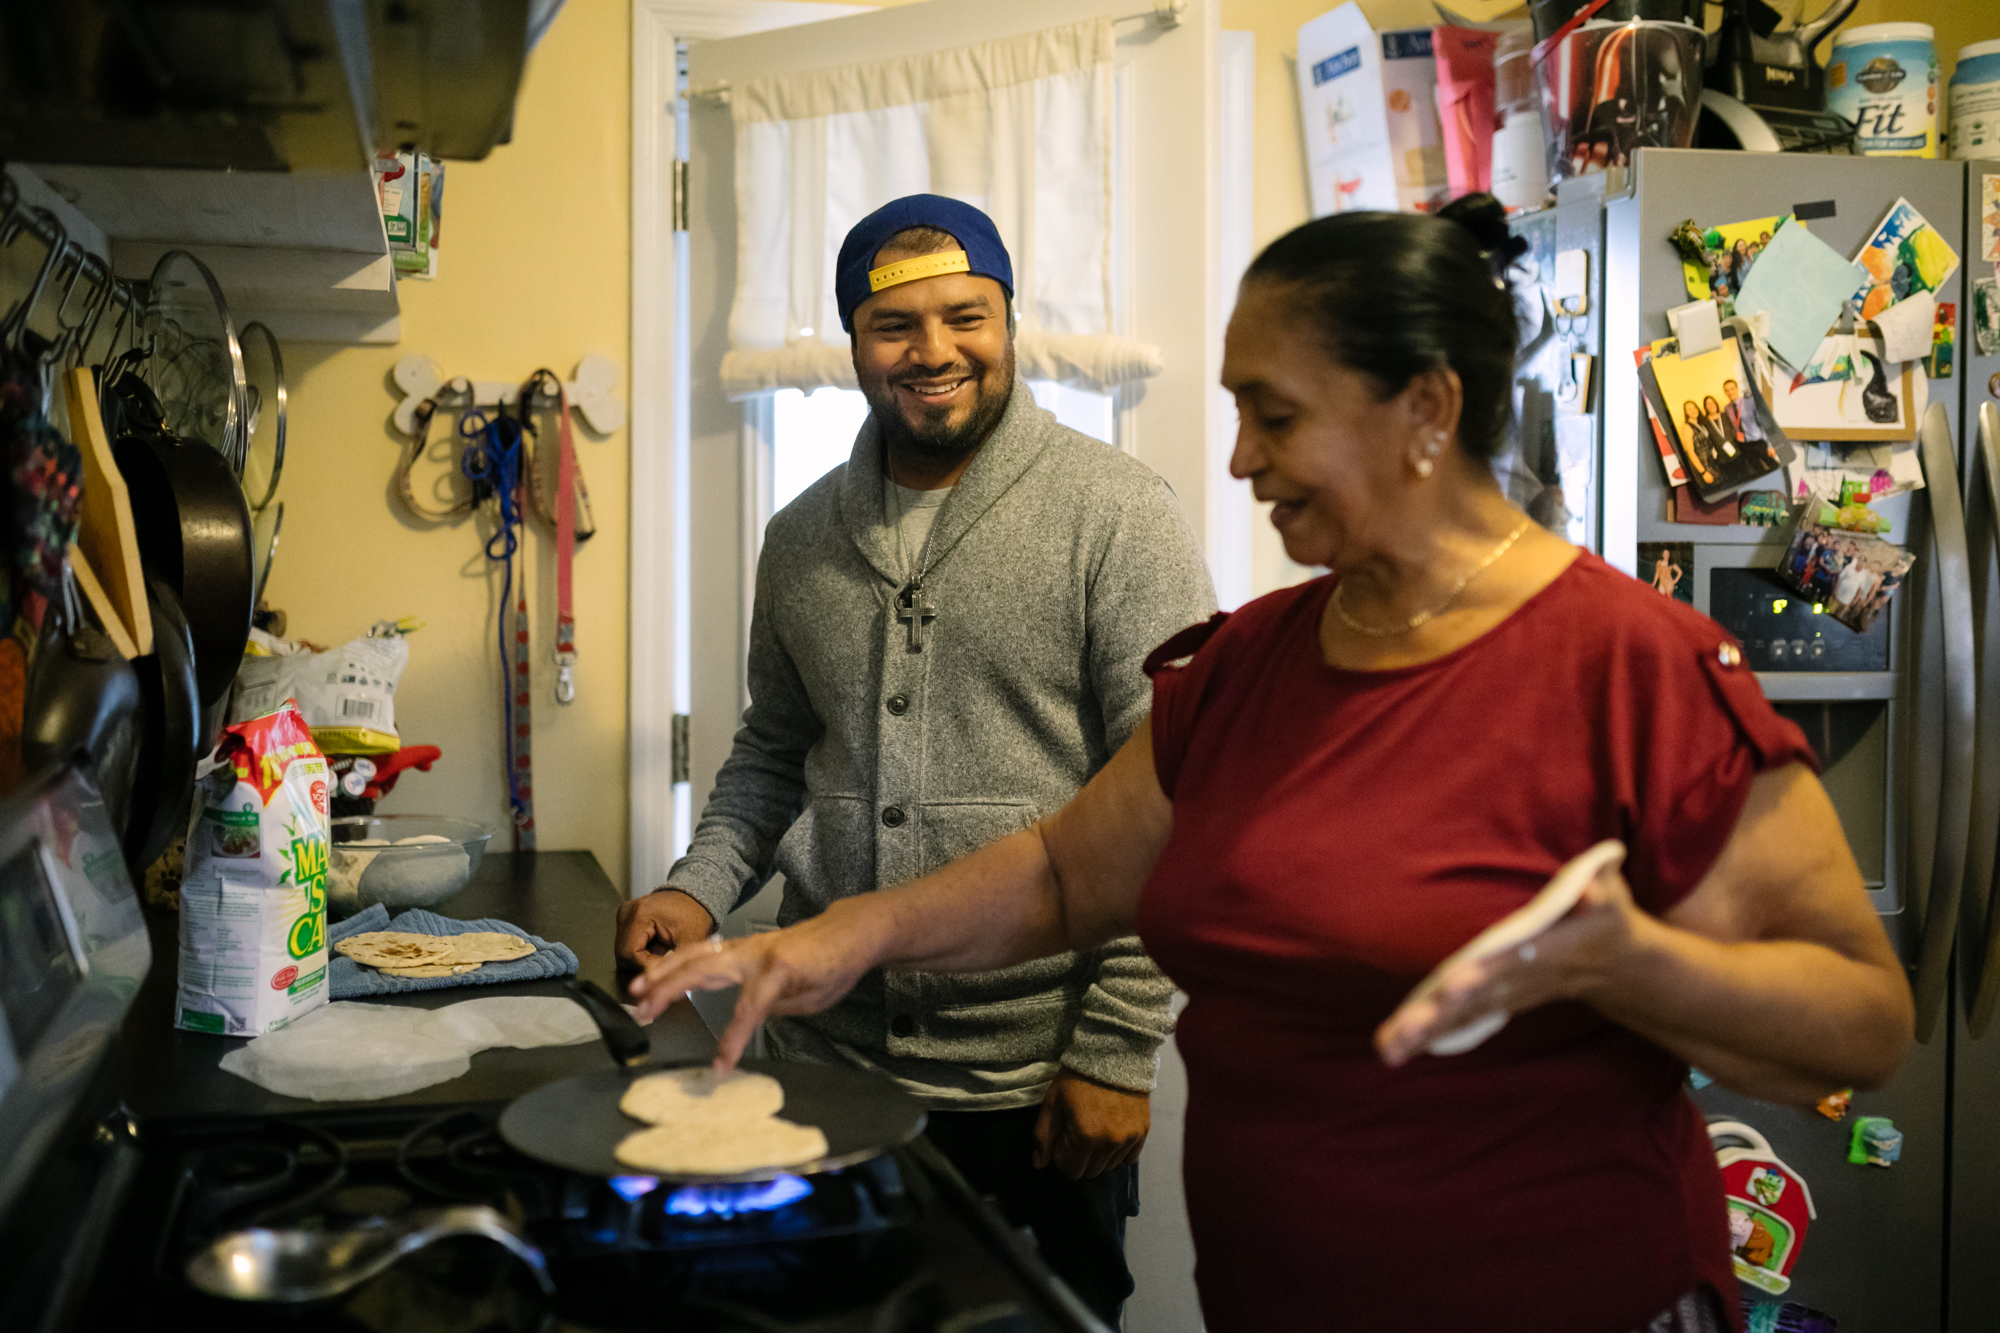 A man looks at his mother as she makes tortillas on the stove